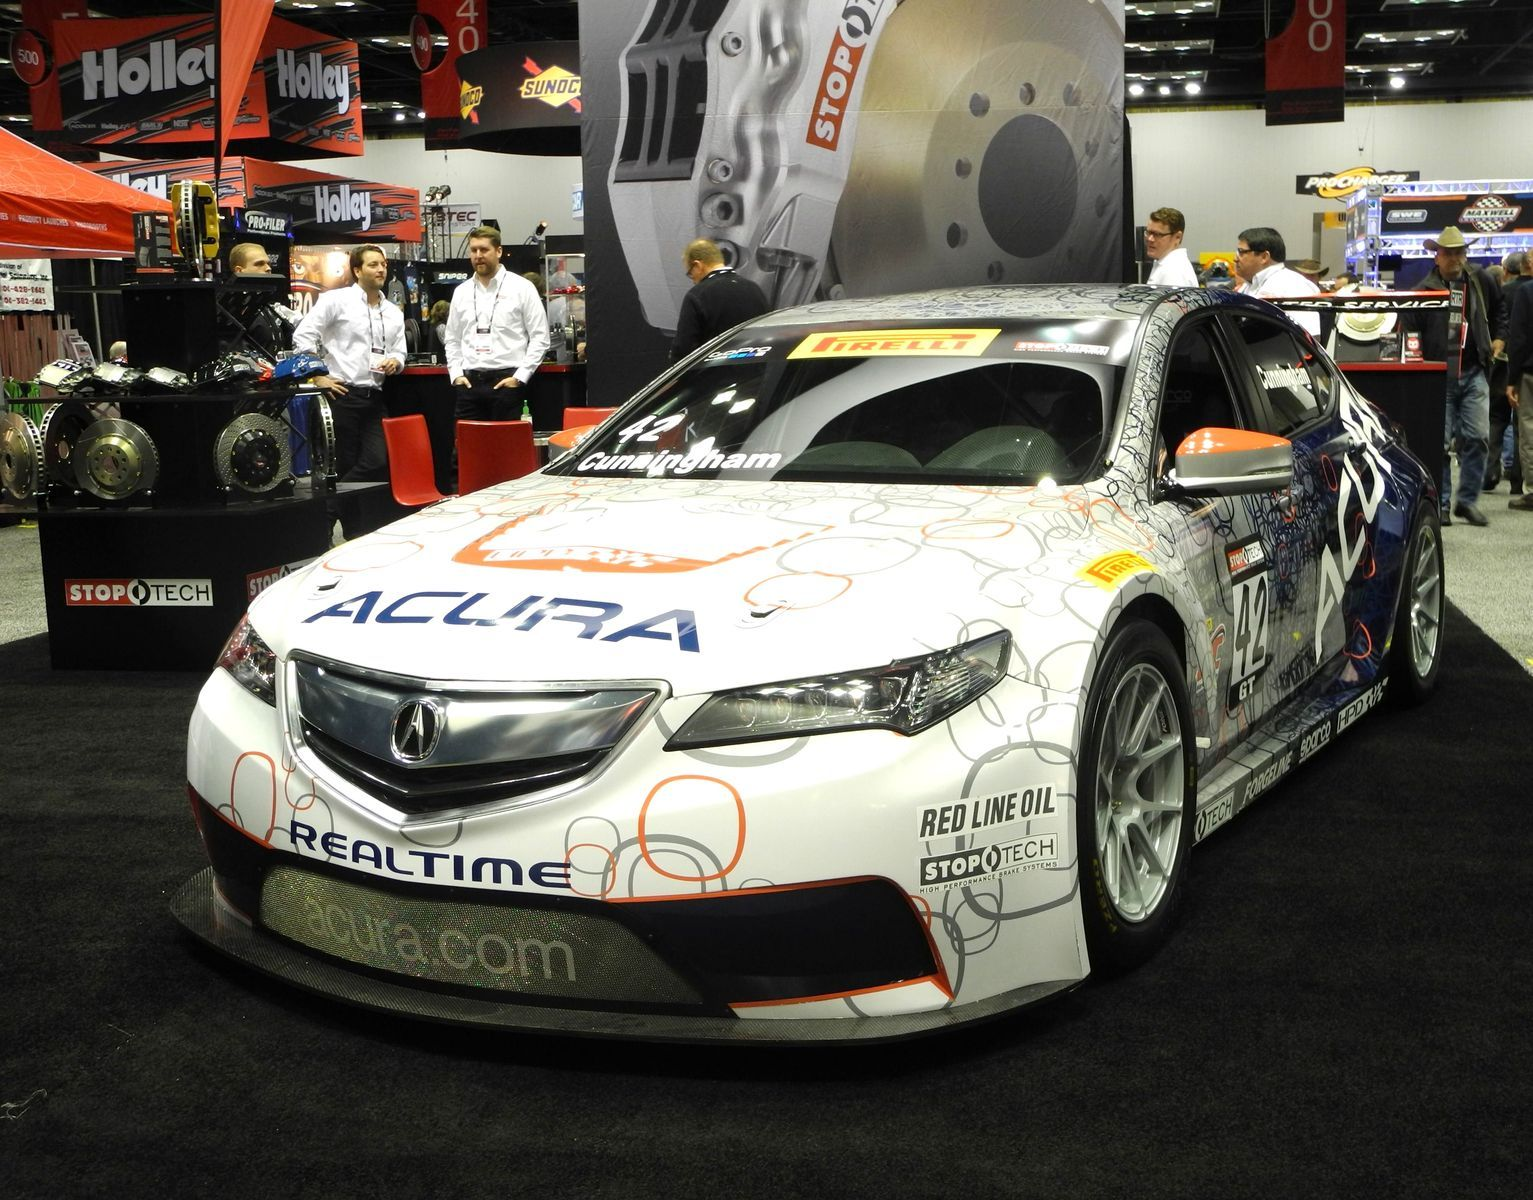 2015 Acura TLX | RealTime Racing Acura TLX GT on Forgeline GA1R Open Lug Wheels